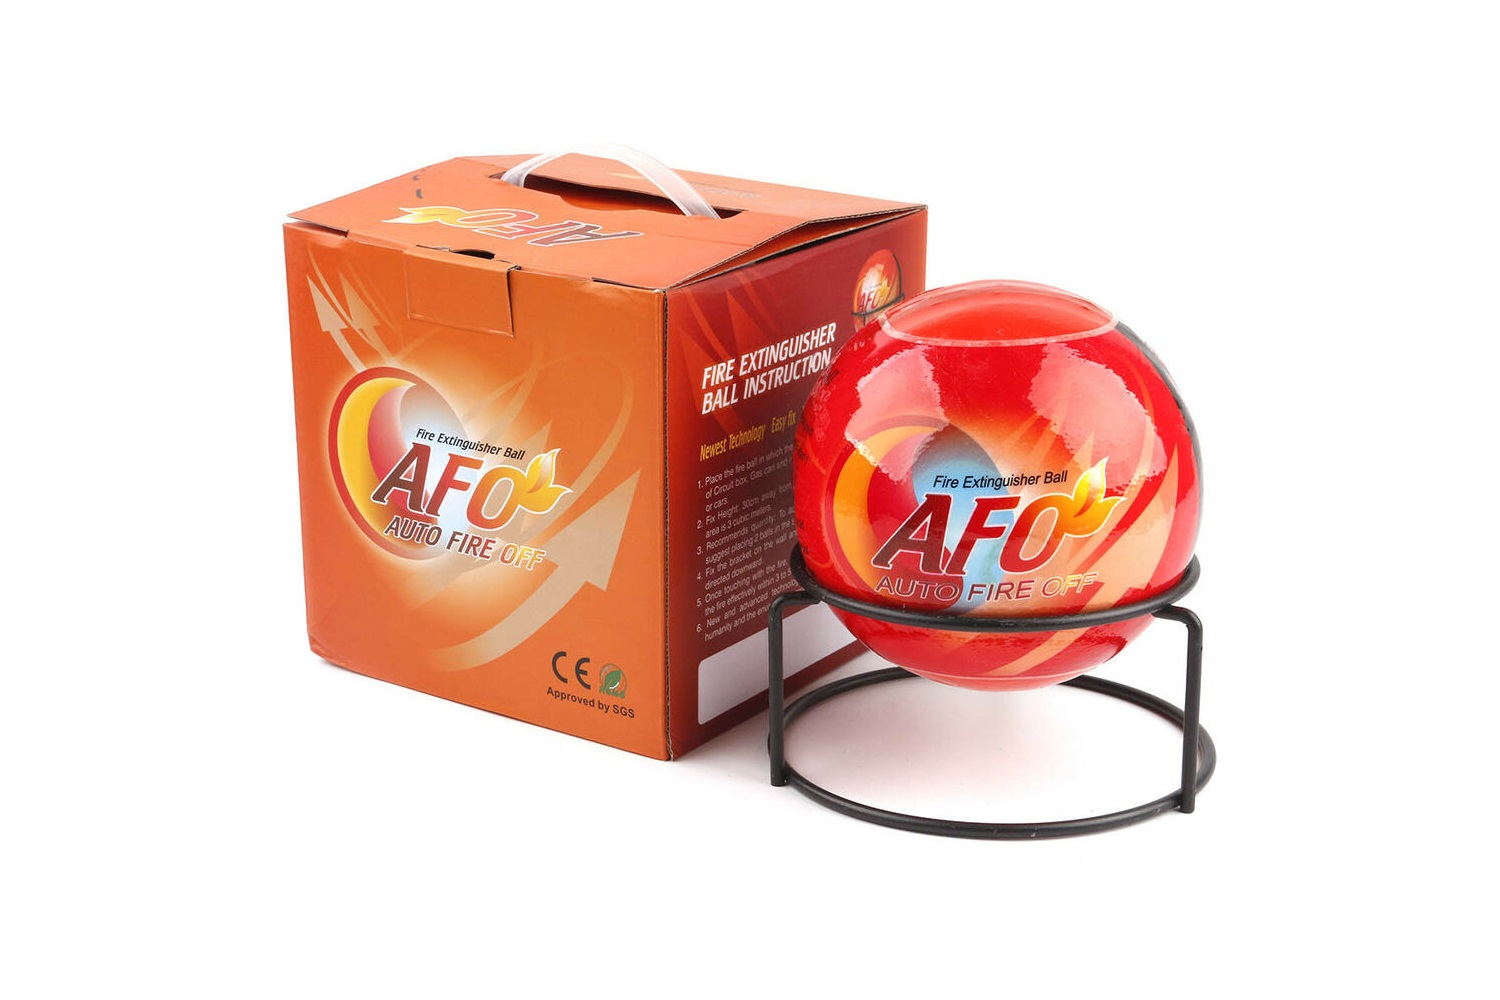 AFO (AUTO FIRE OFF BALL)